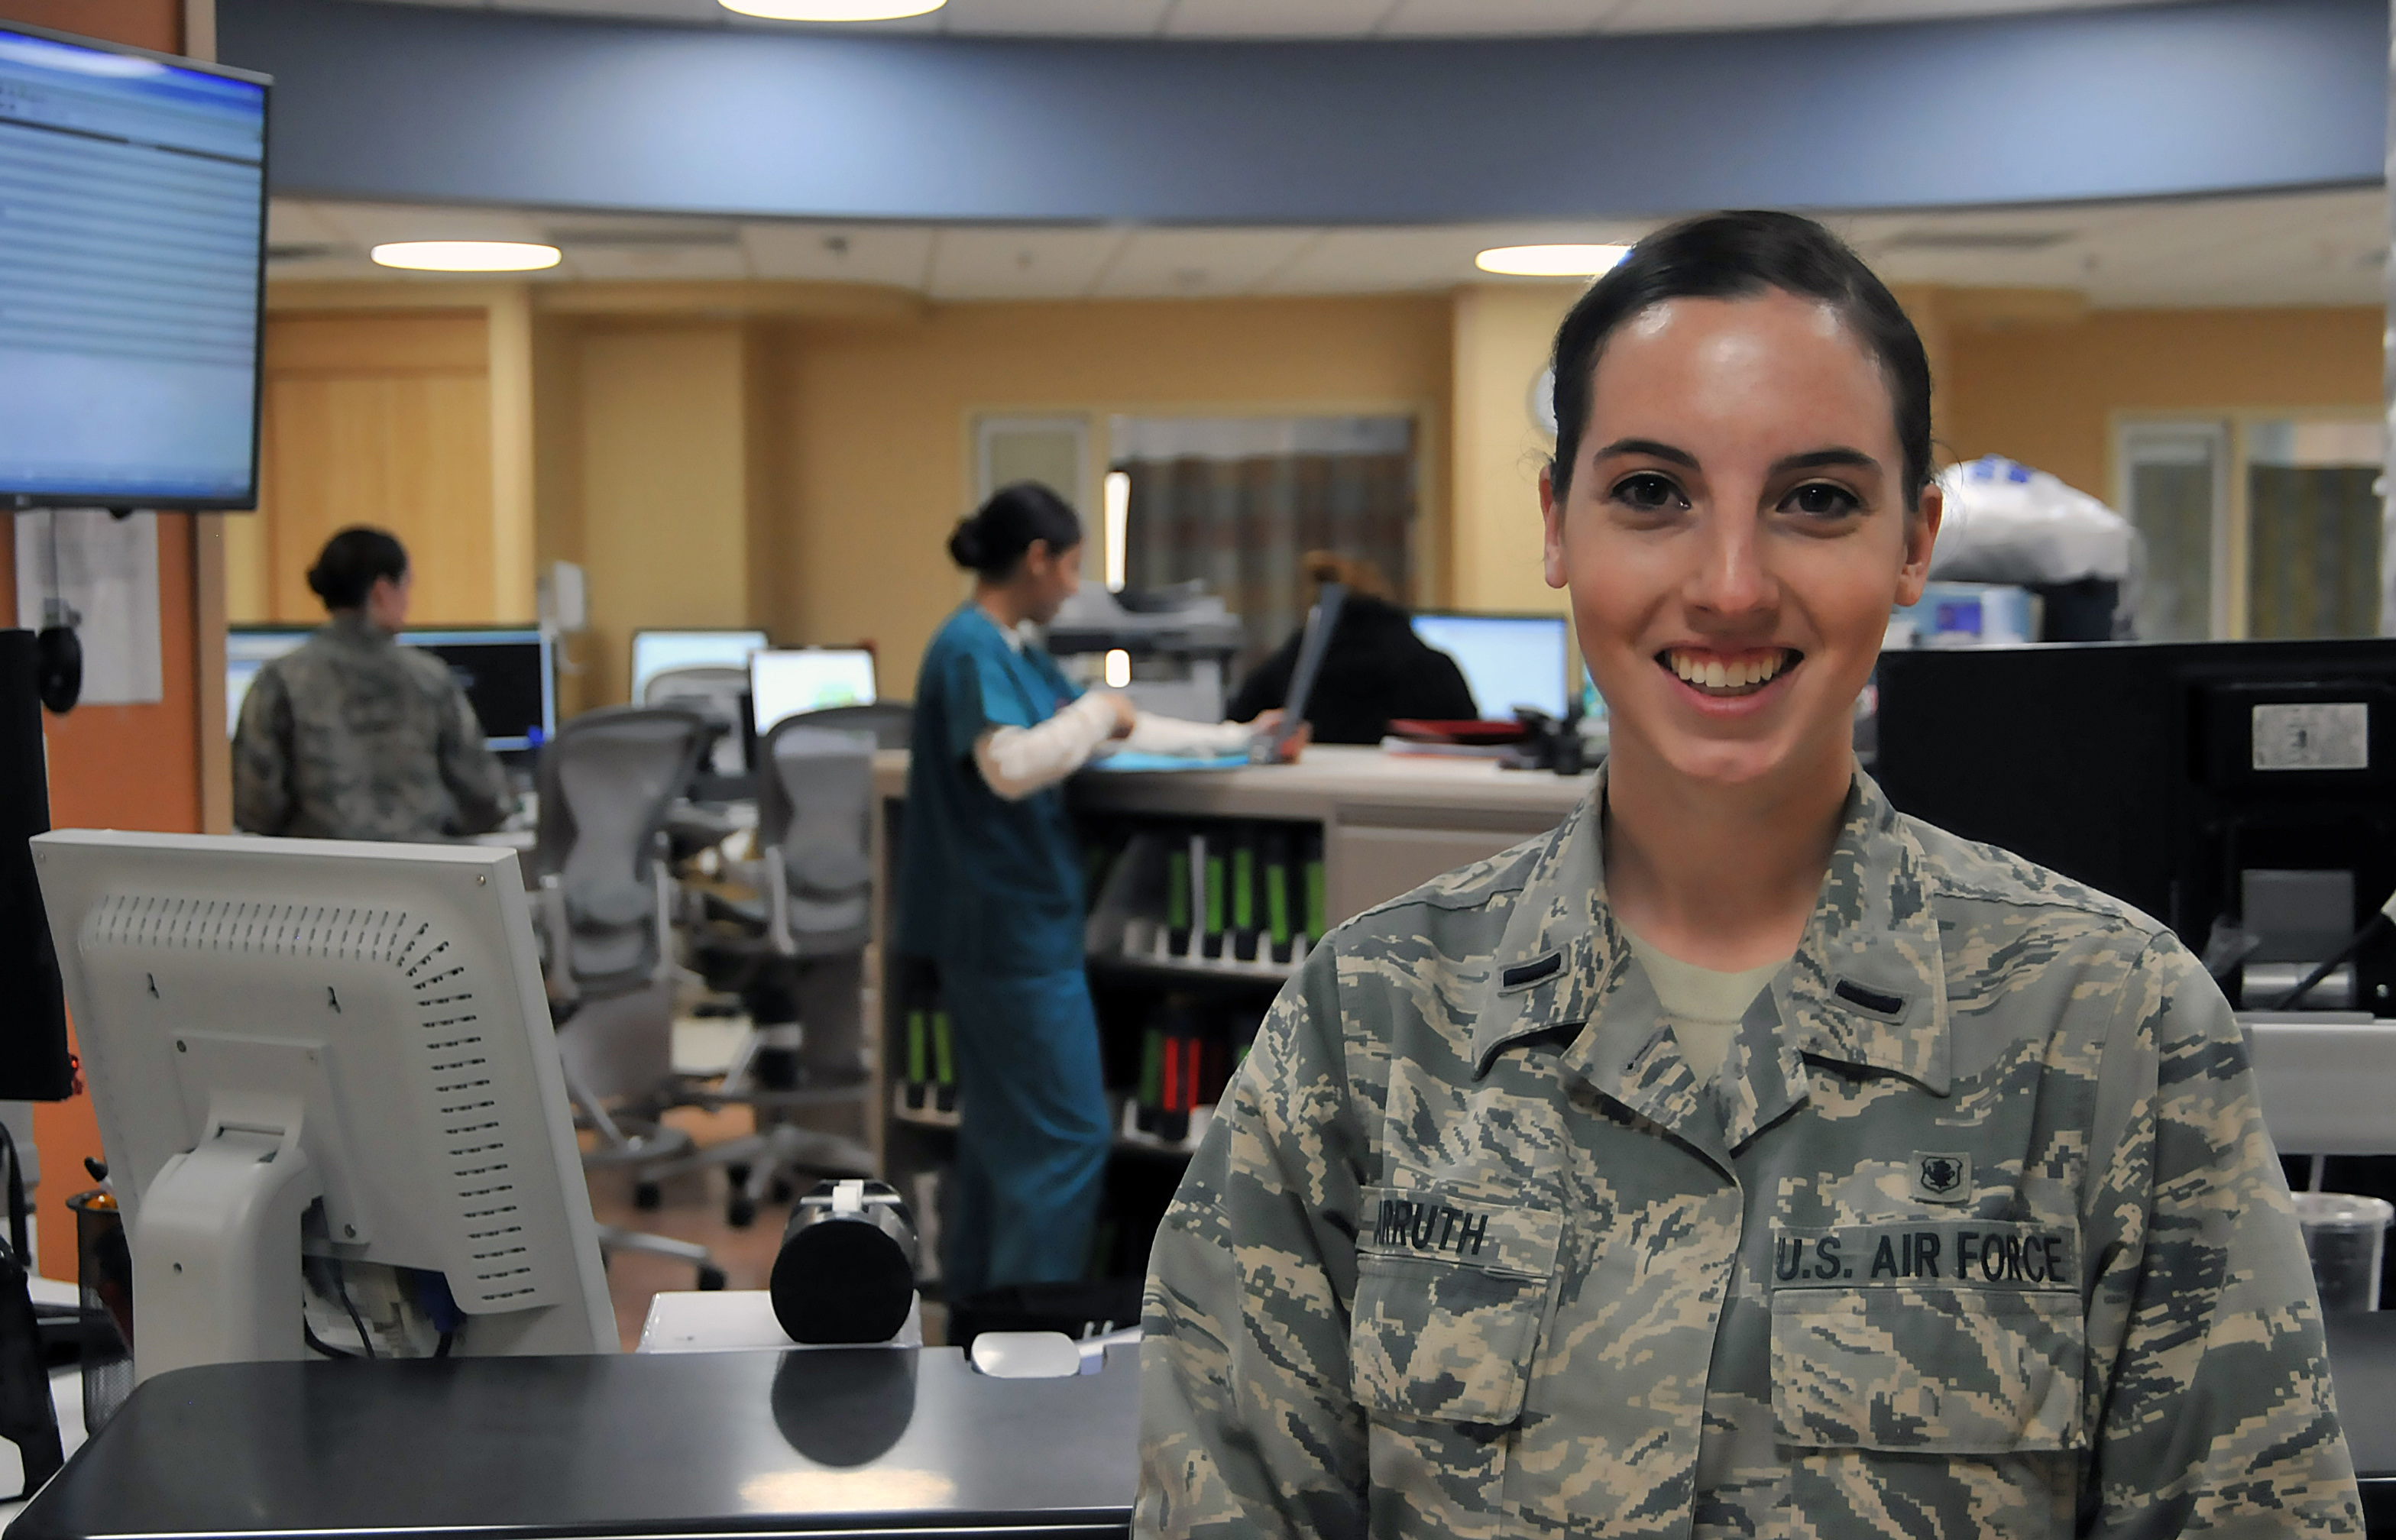 Nursing Organizational Chart In Hospital: First Lt. Carruth: Keesler7s Trusted Care Hero e Keesler Air Force ,Chart